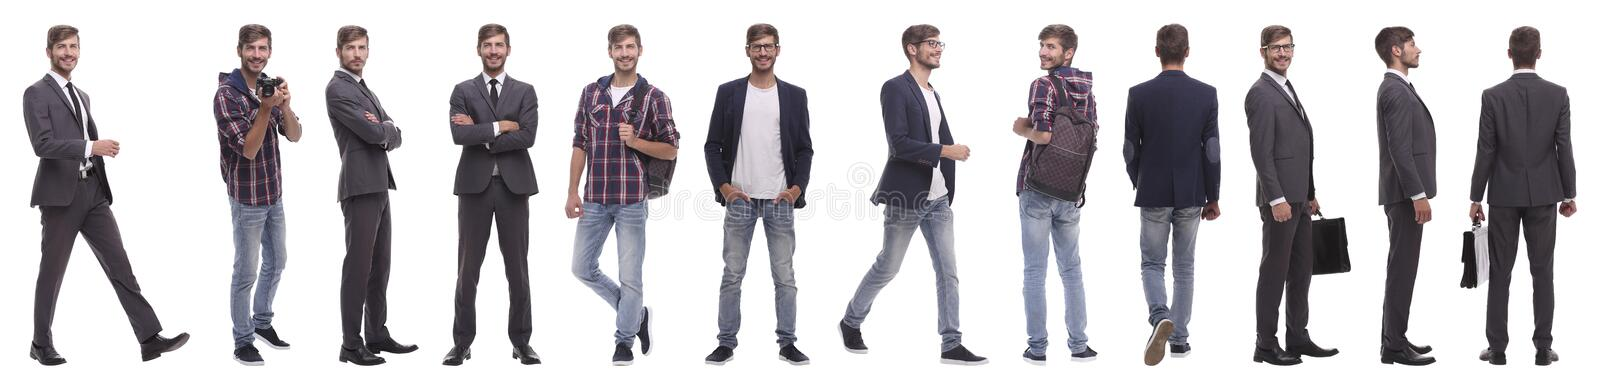 Panoramic collage of a promising young man royalty free stock photography